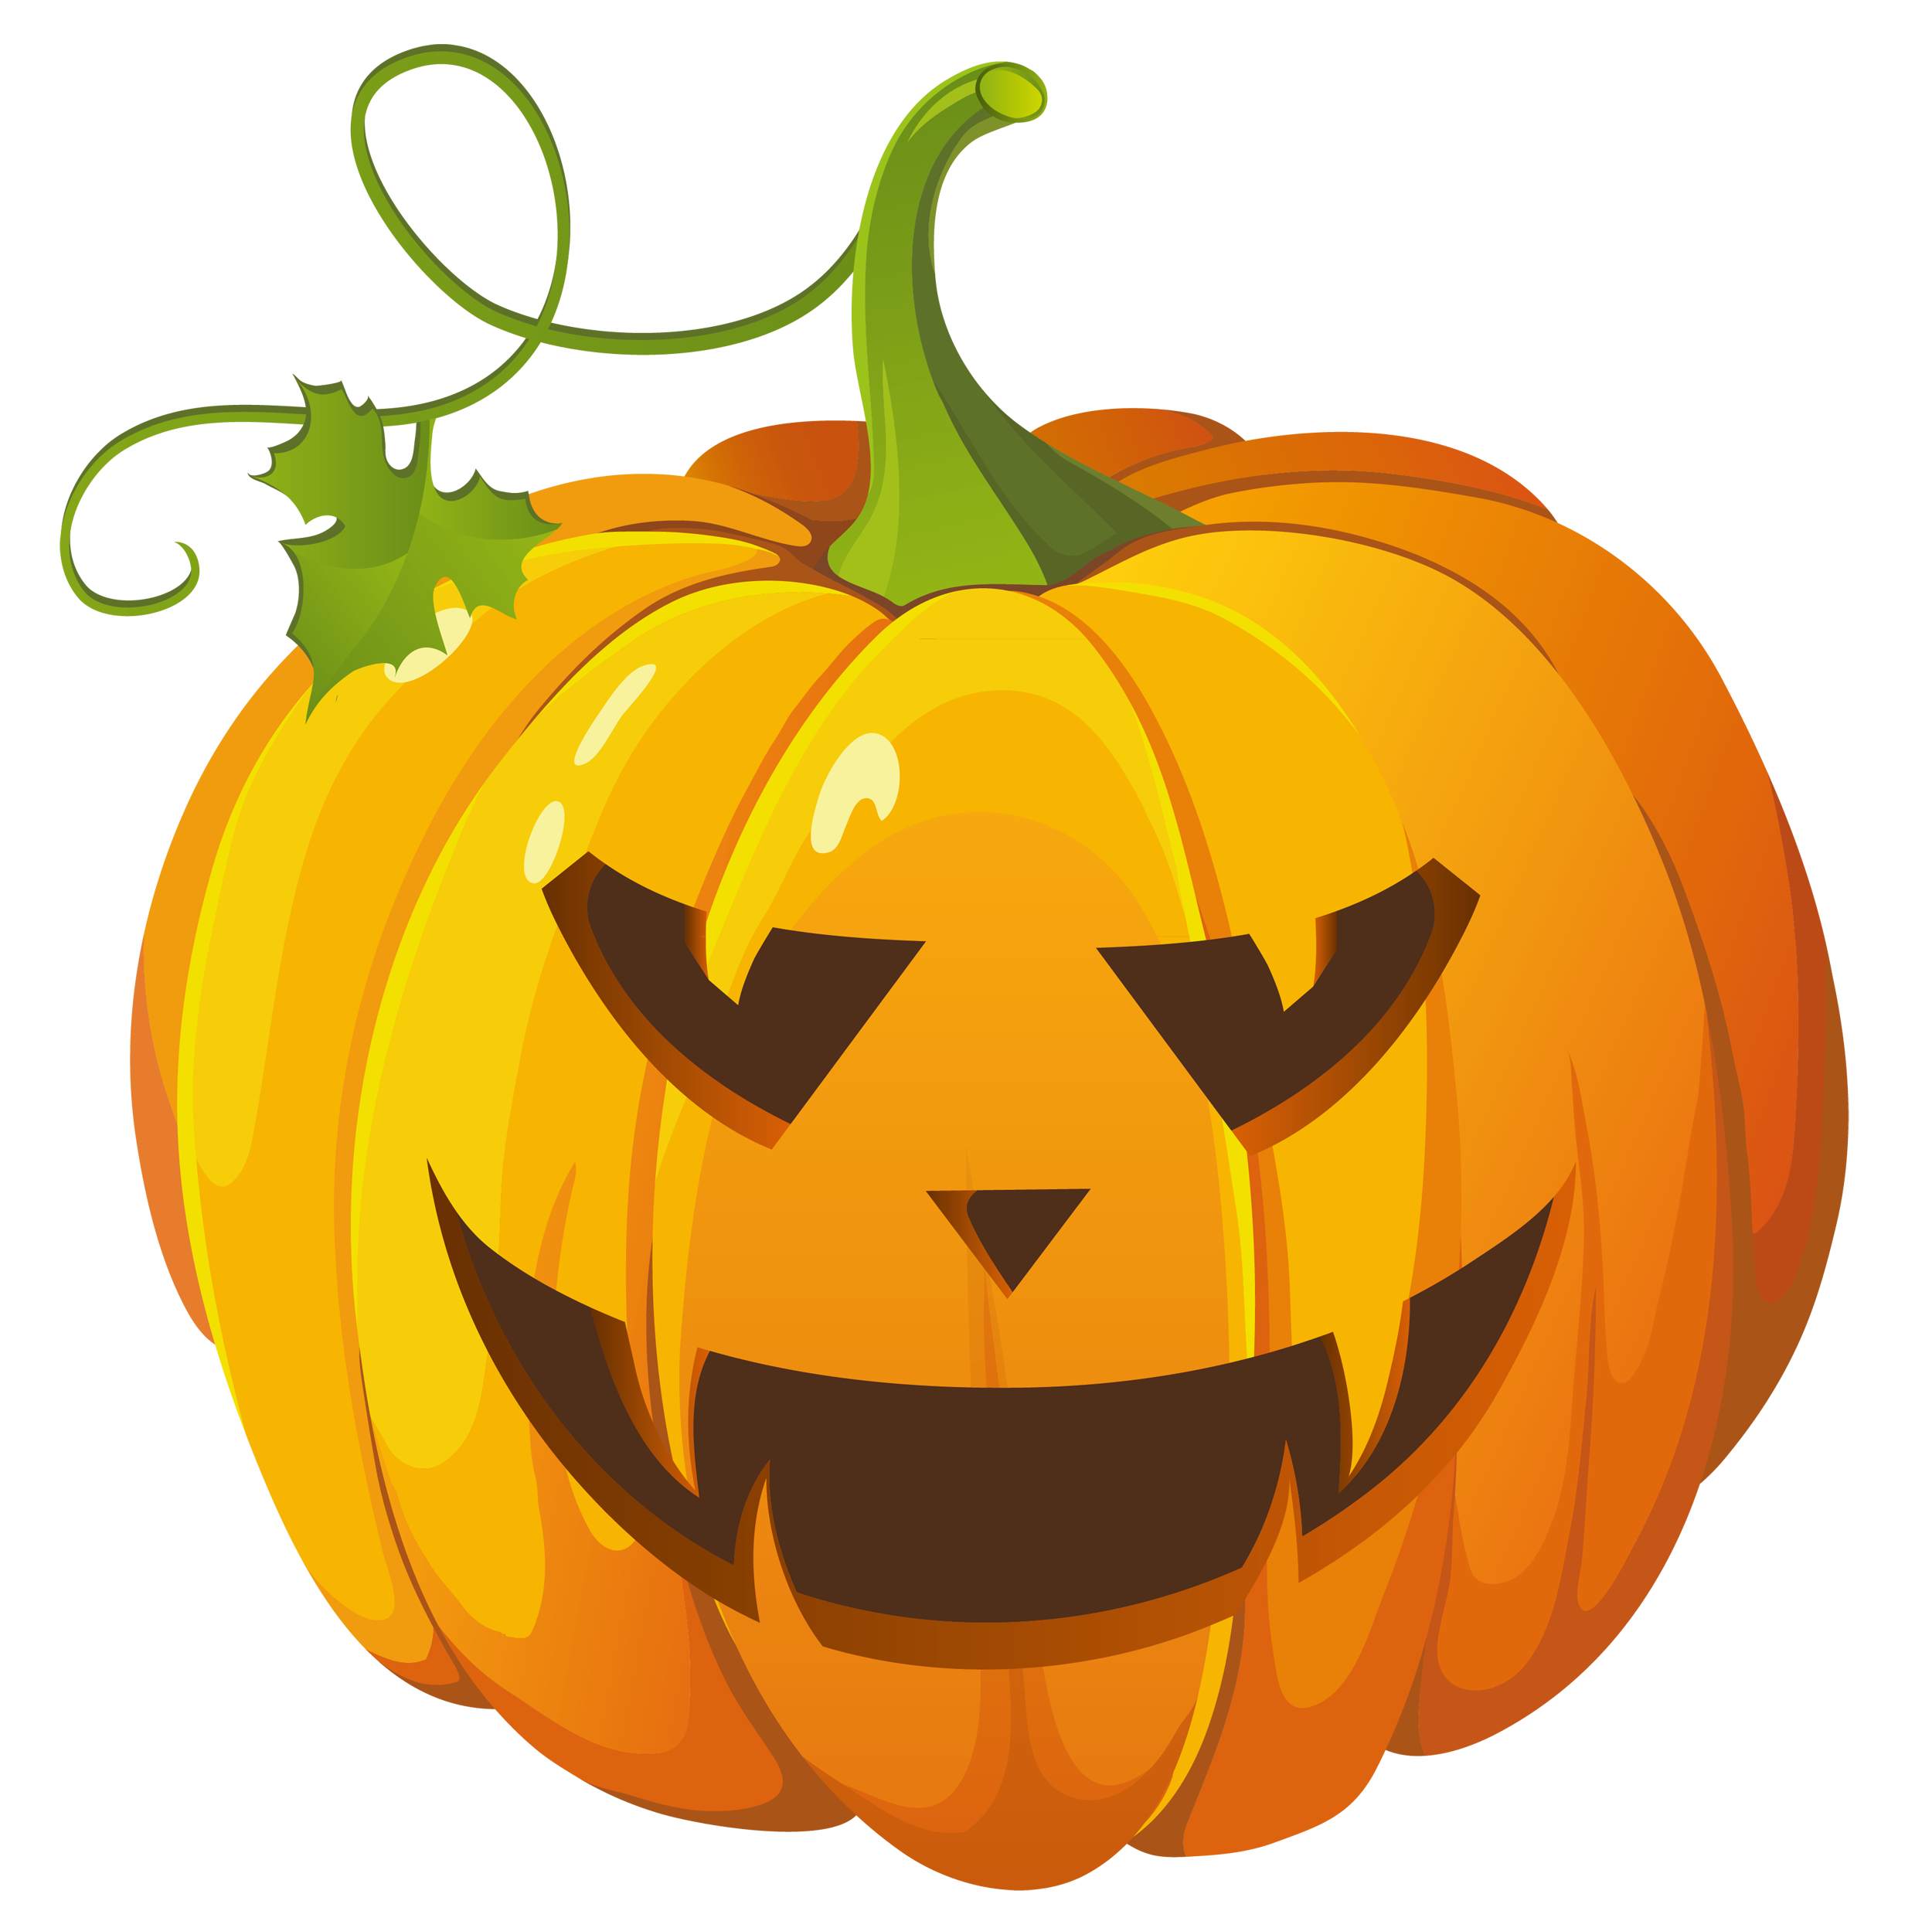 Pumpkin carving clipart free clipart transparent library Free Pumpkin Clipart at GetDrawings.com | Free for personal use Free ... clipart transparent library